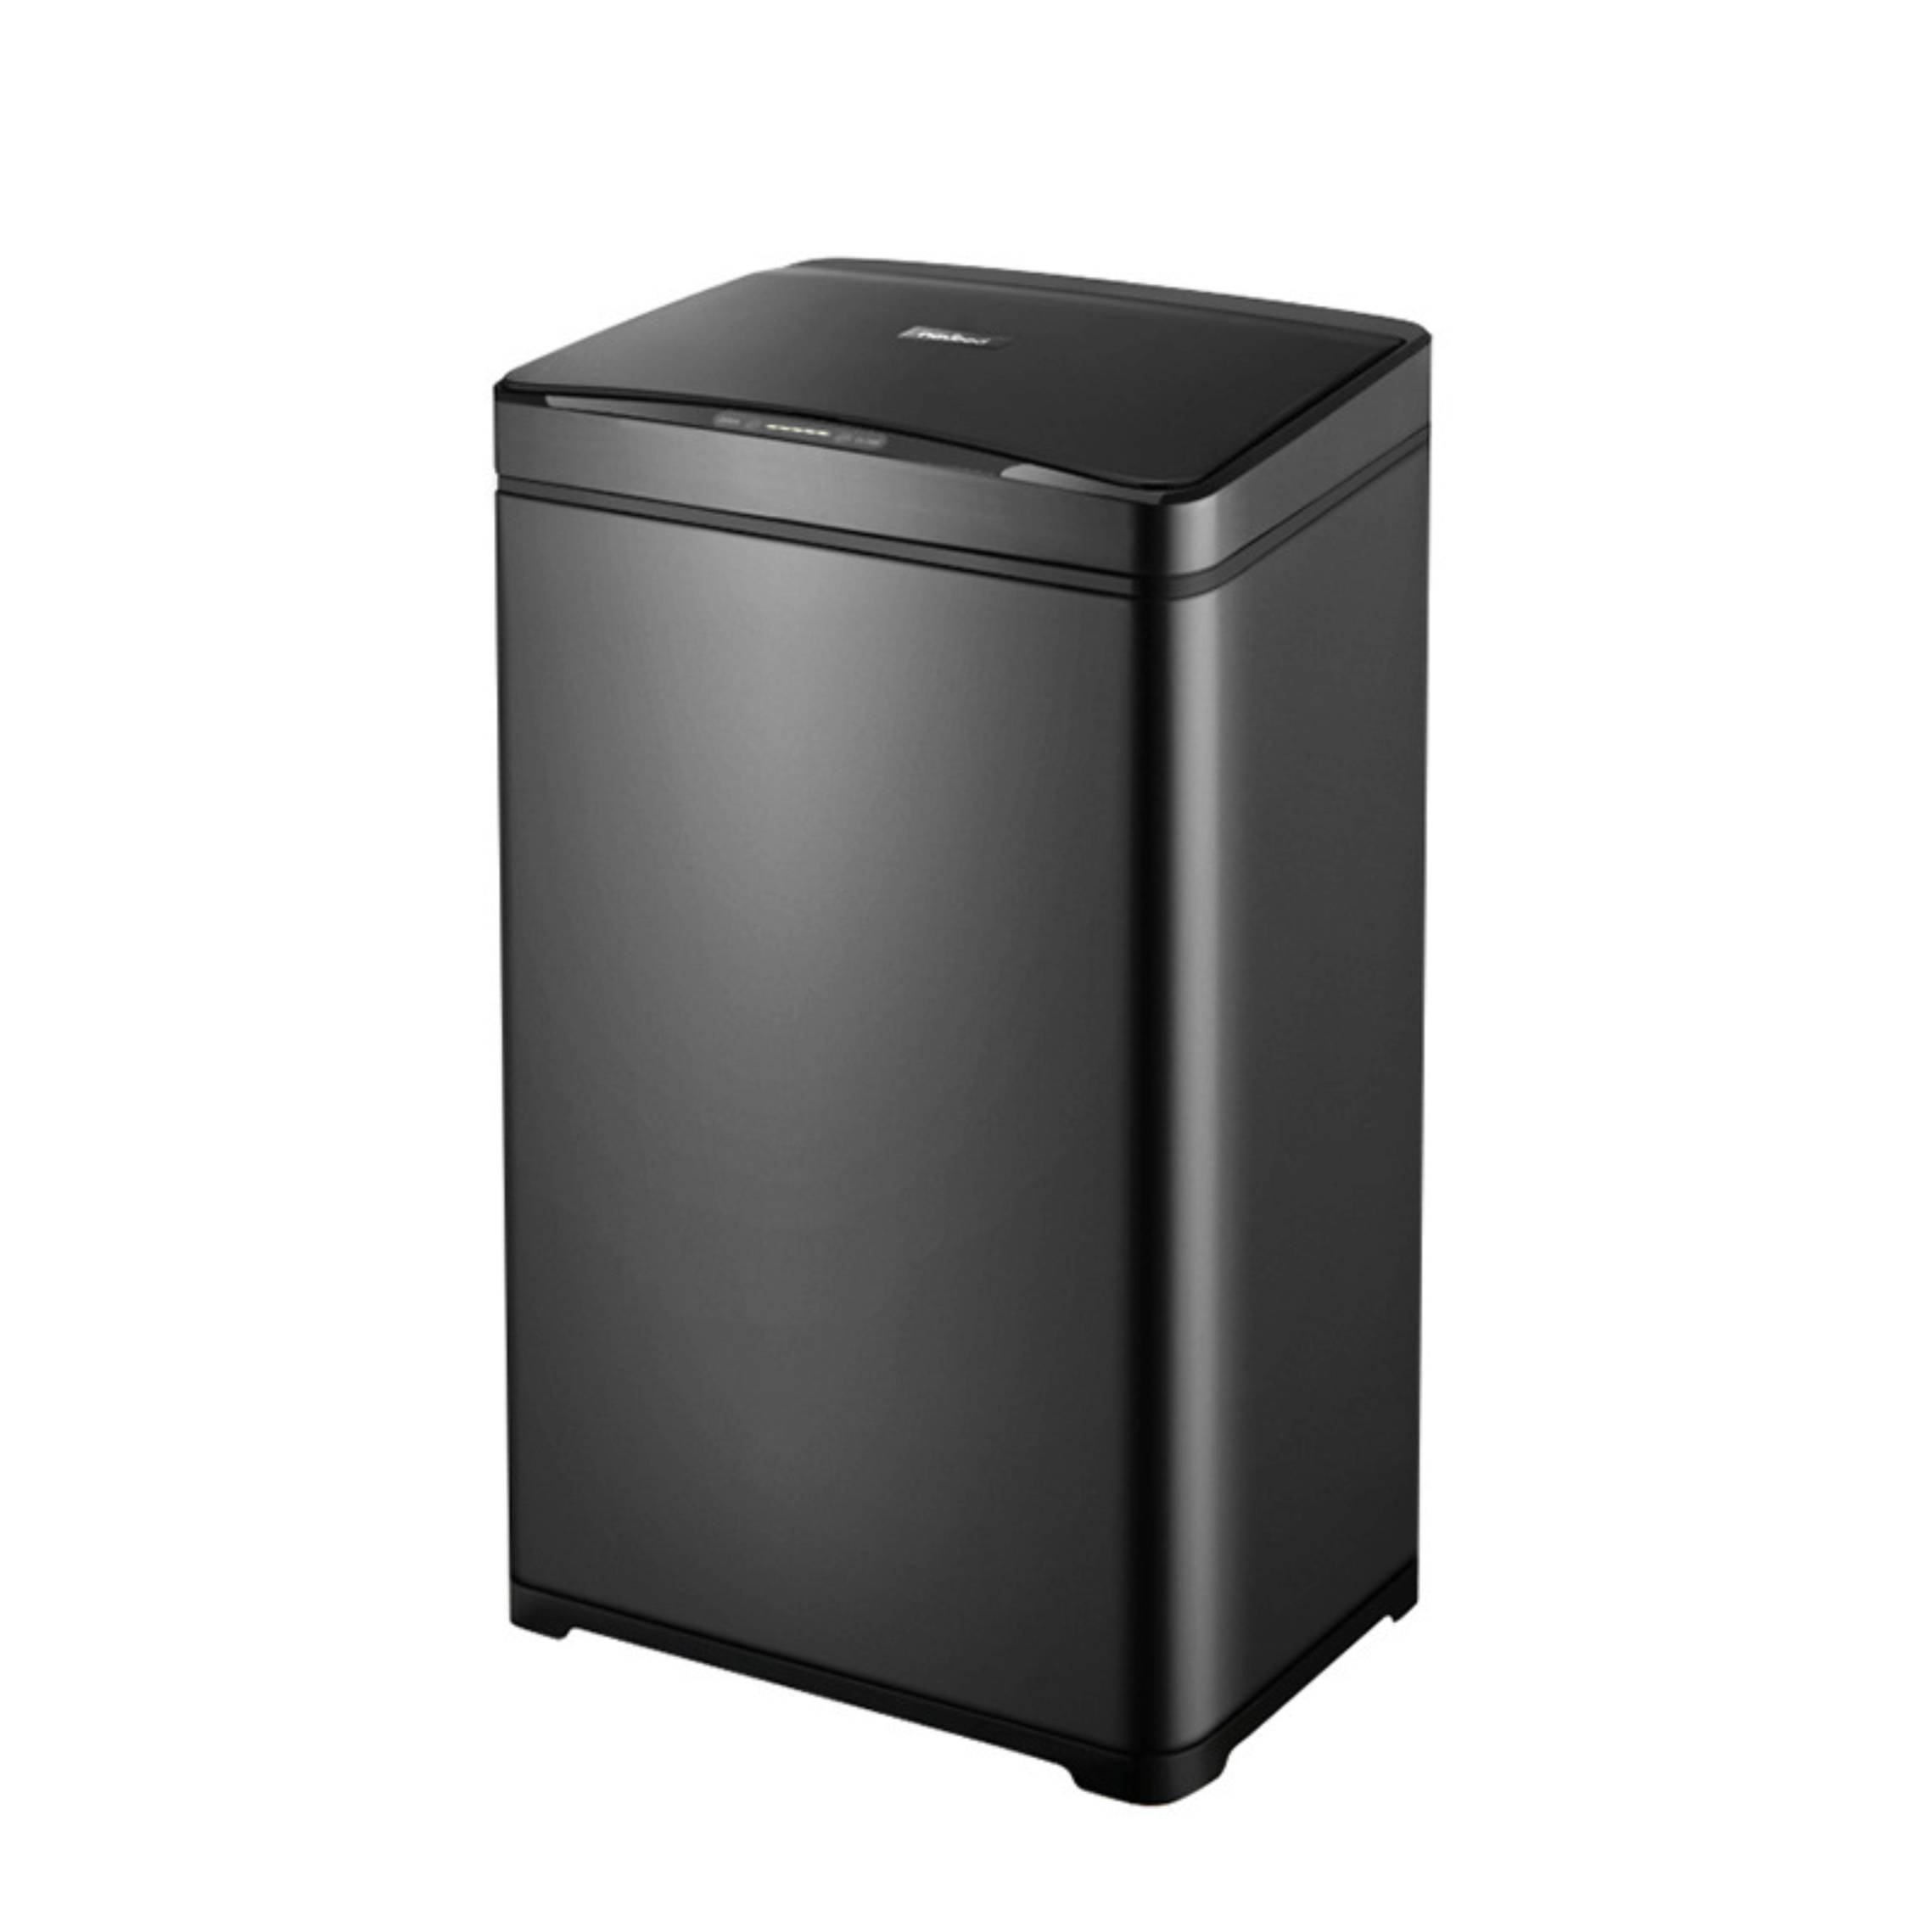 30Liter Sensor Trash Can with Metal for Indoor Use